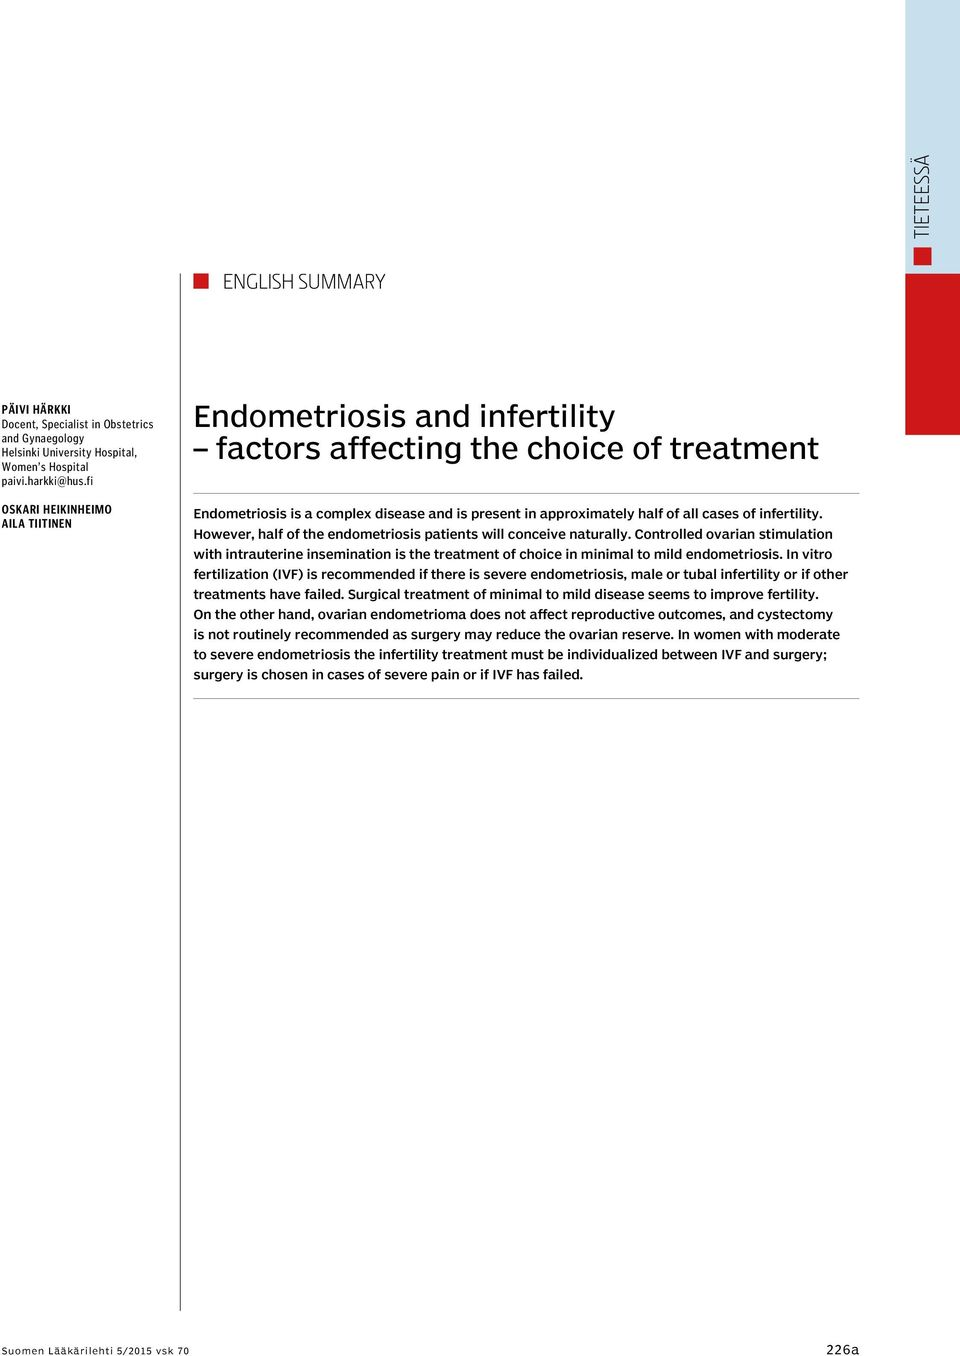 infertility. However, half of the endometriosis patients will conceive naturally.